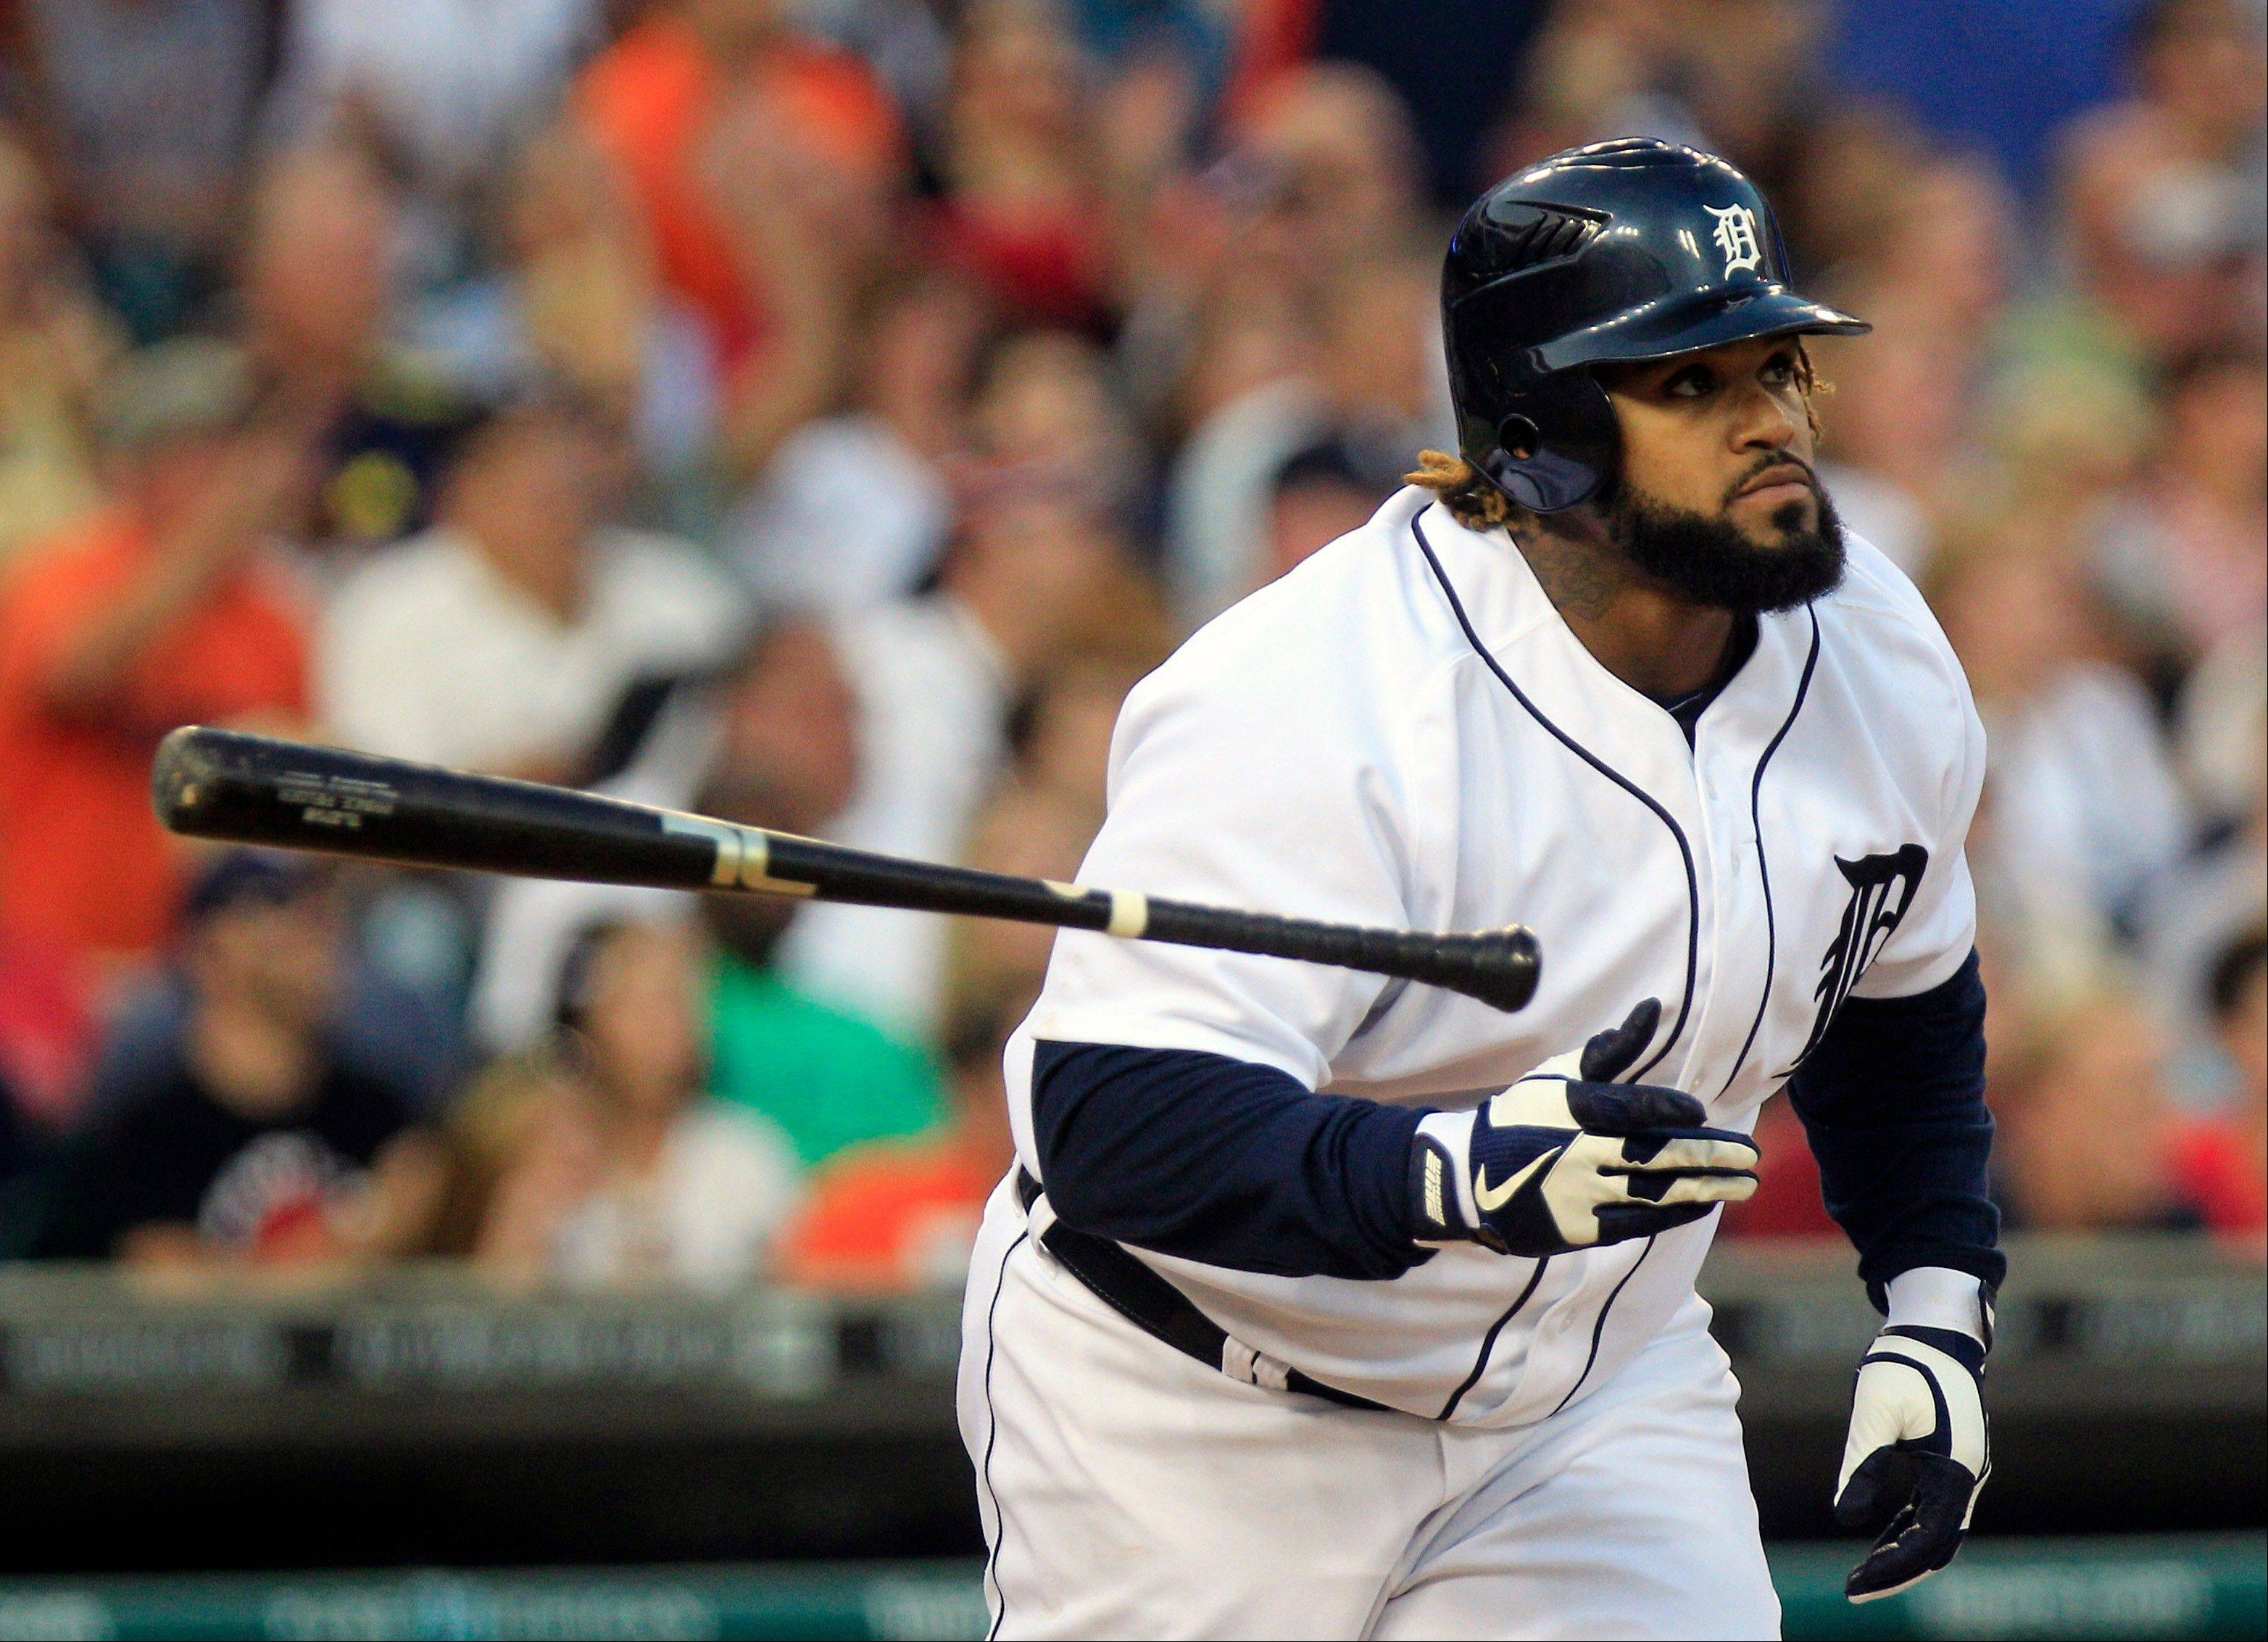 Detroit's Prince Fielder tosses his bat after hitting a two-run home run during the fourth inning of Friday's game in Cleveland.